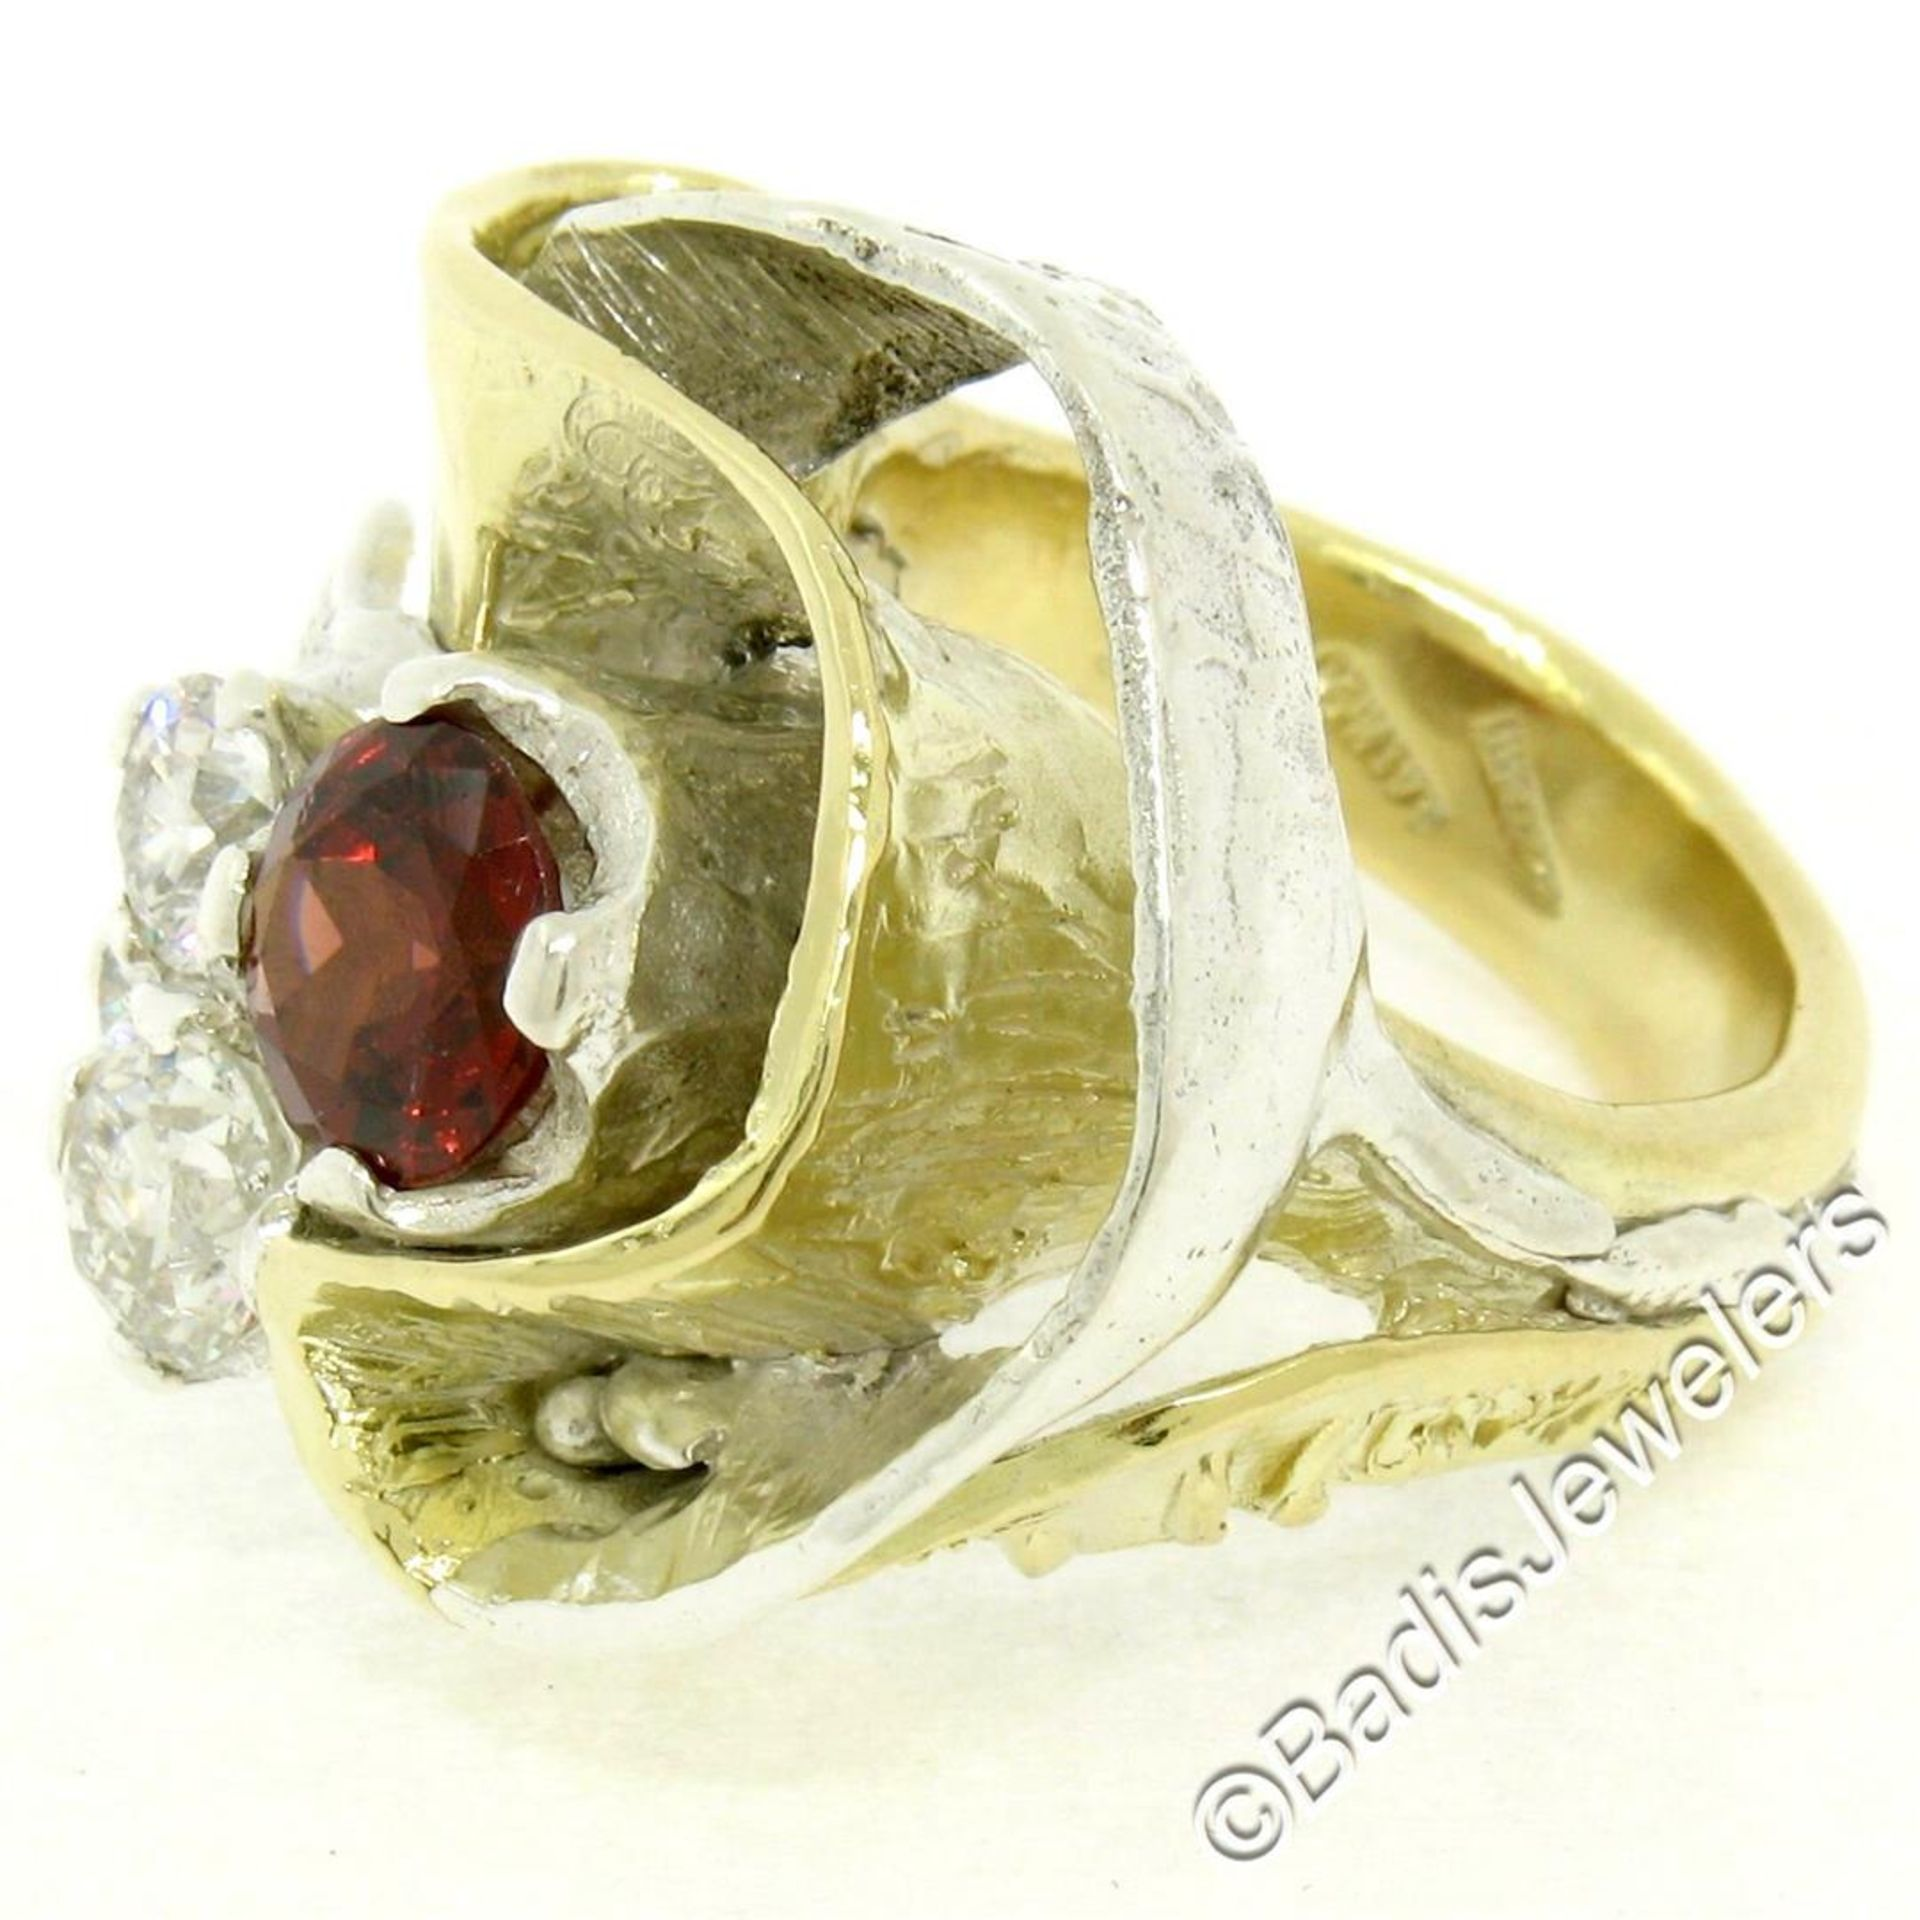 18kt Yellow Gold and Sterling Silver 2.73ctw Garnet and Diamond Cocktail Ring - Image 4 of 9